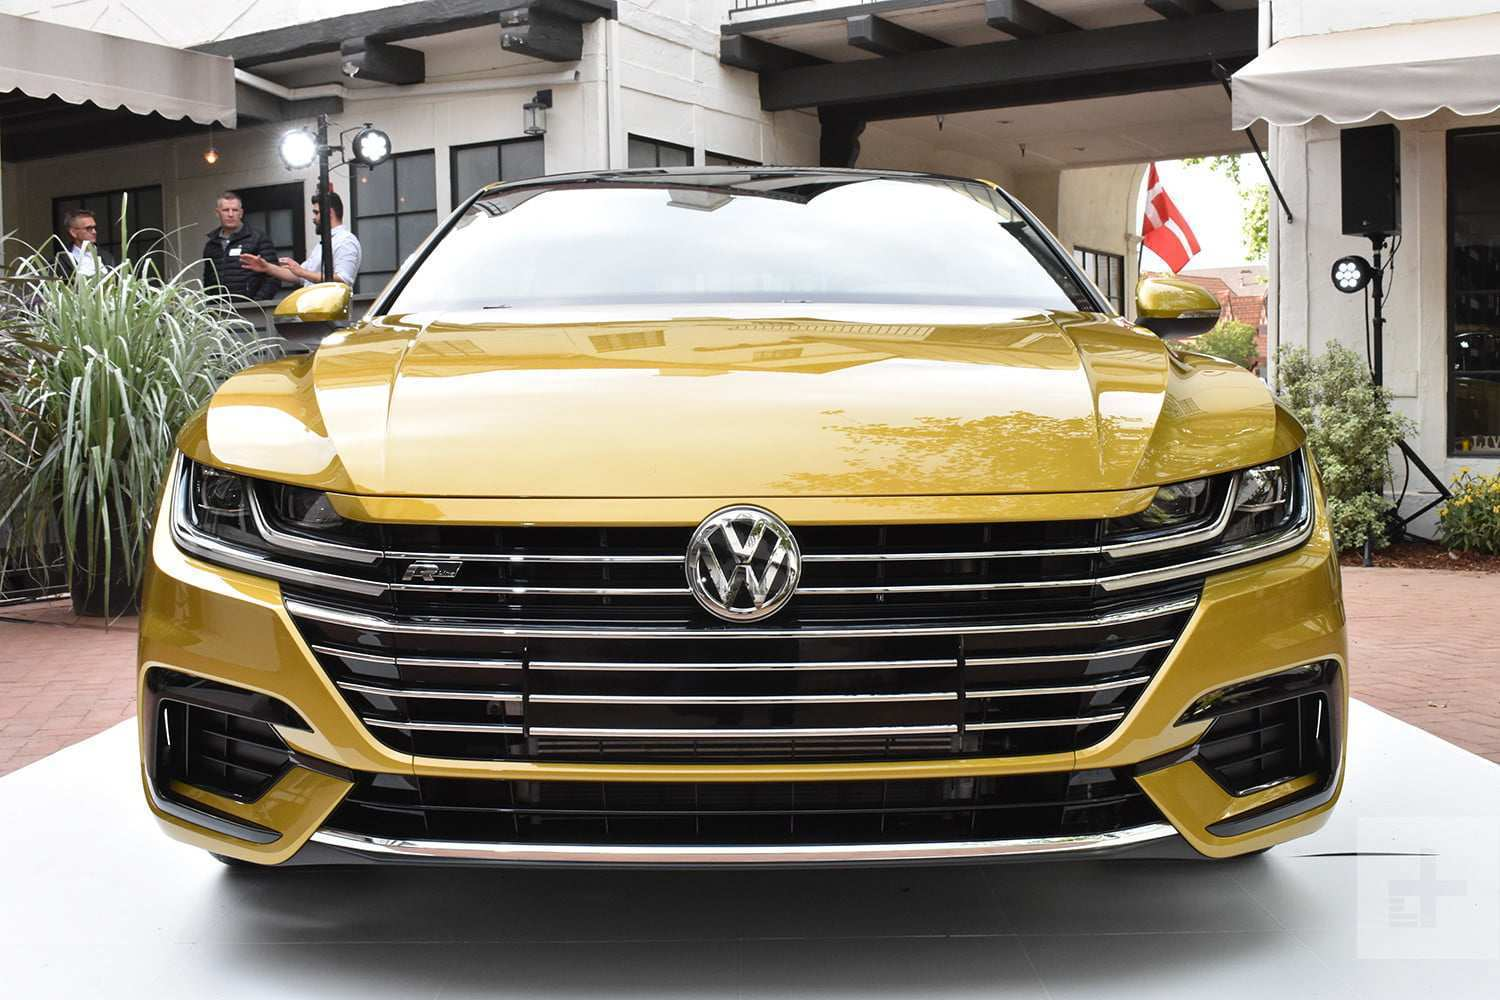 80 New Vw 2019 Arteon Release Date and Concept